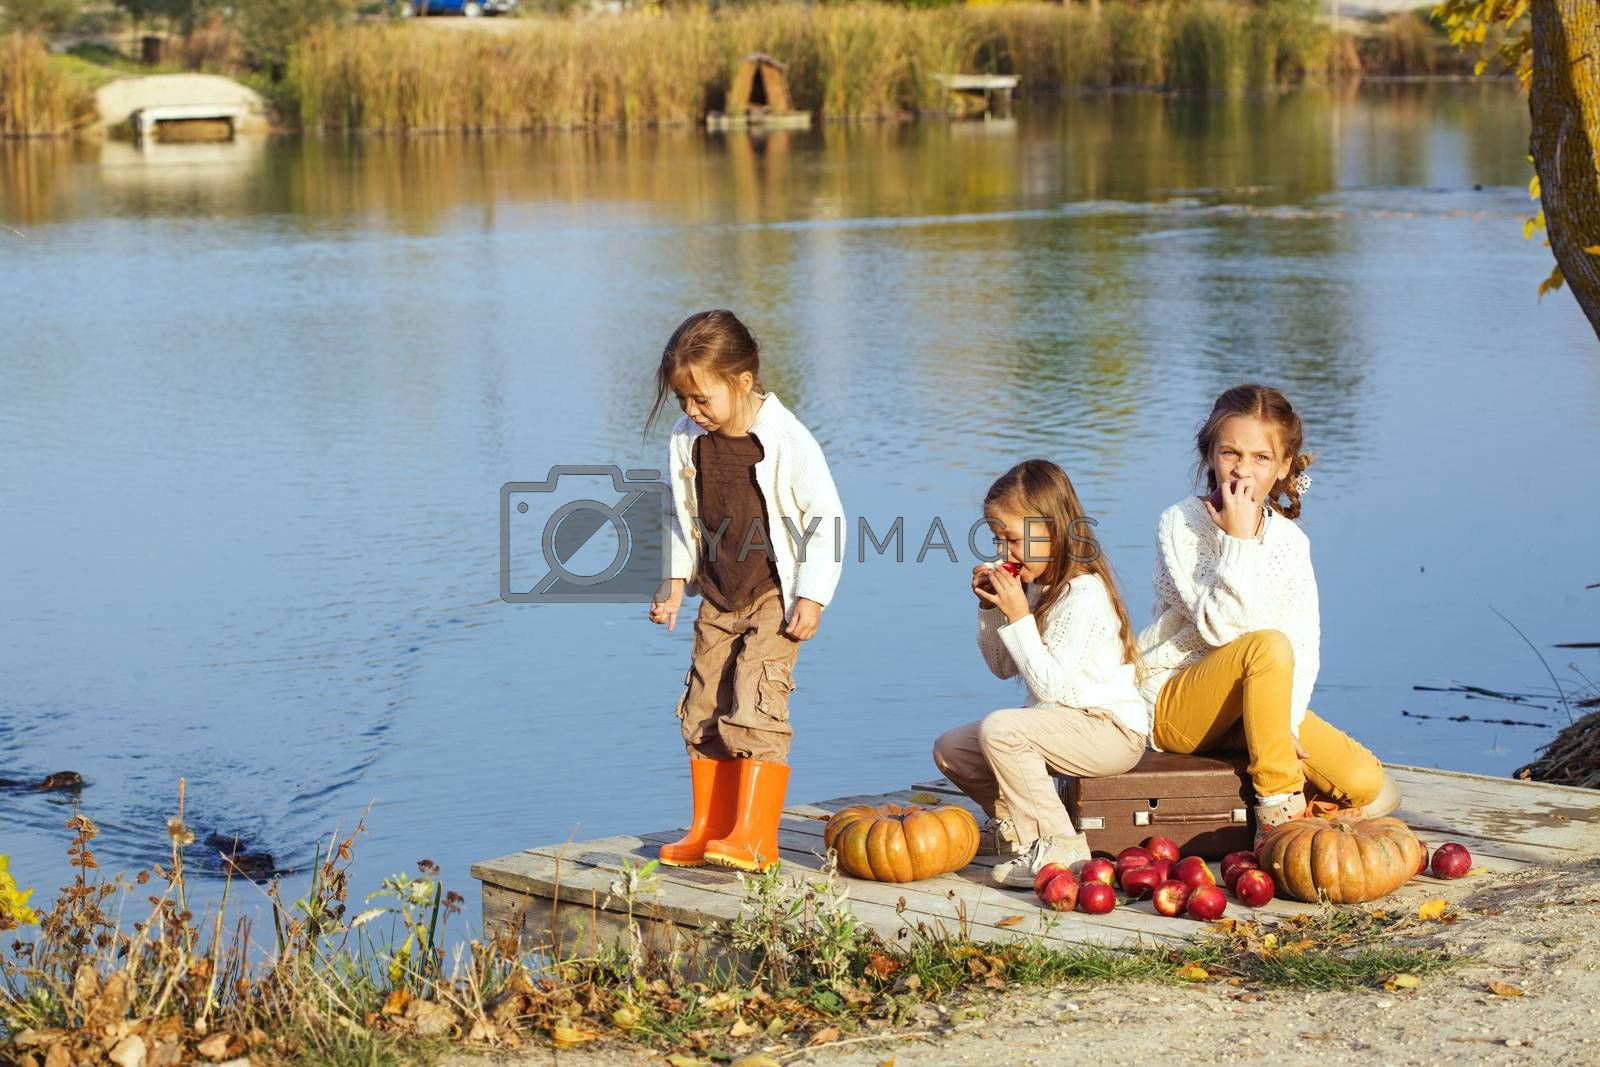 Three cheerful little girls playing on the lake in warm autumn day / Fall lifestyle portrait of children having fun on wooden bearth over the river landscape